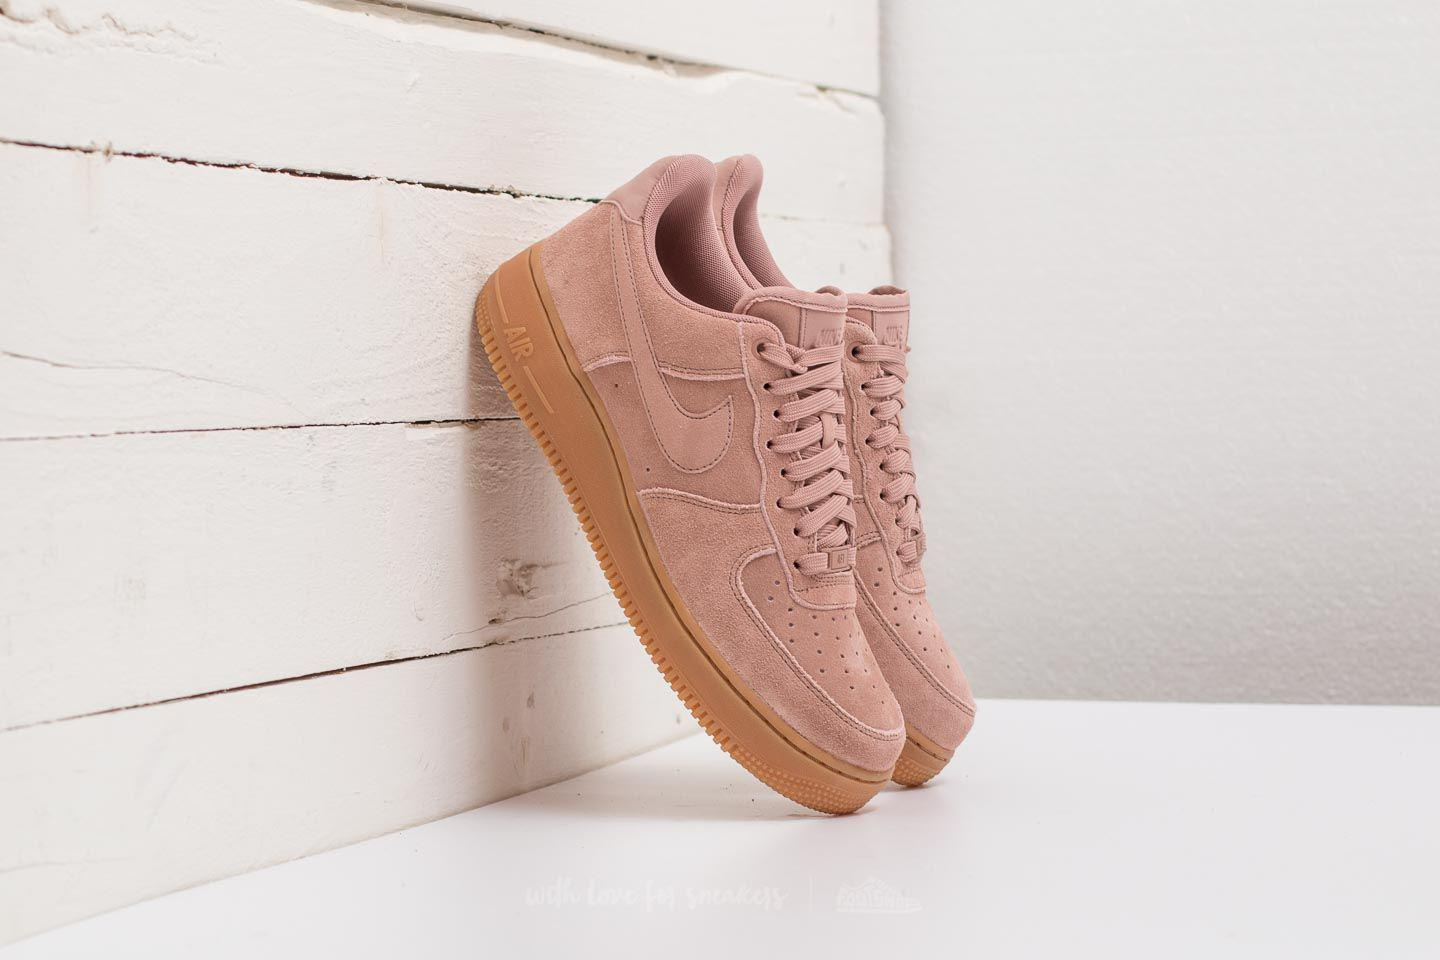 97419f0d52097b Lyst - Nike Air Force 1 ́07 Lv8 Suede Particle Pink  Particle Pink ...